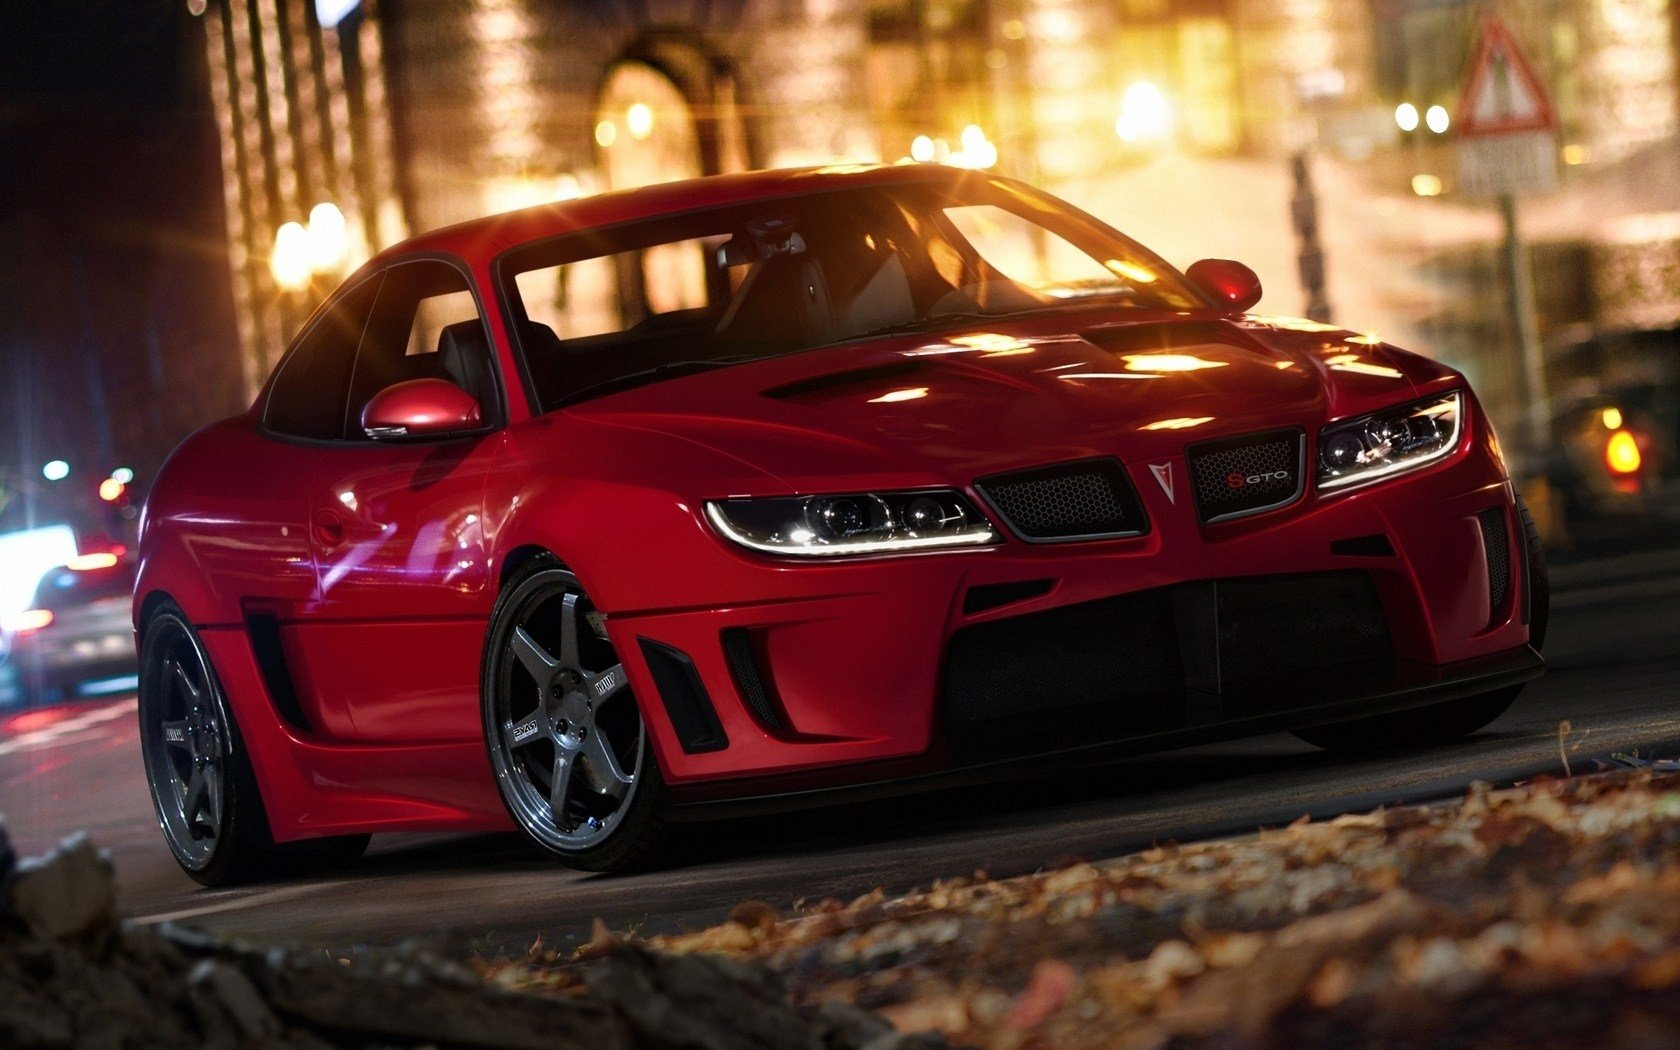 Pontiac GTO Wallpaper and Background Image | 1680x1050 | ID:446051 - Wallpaper Abyss